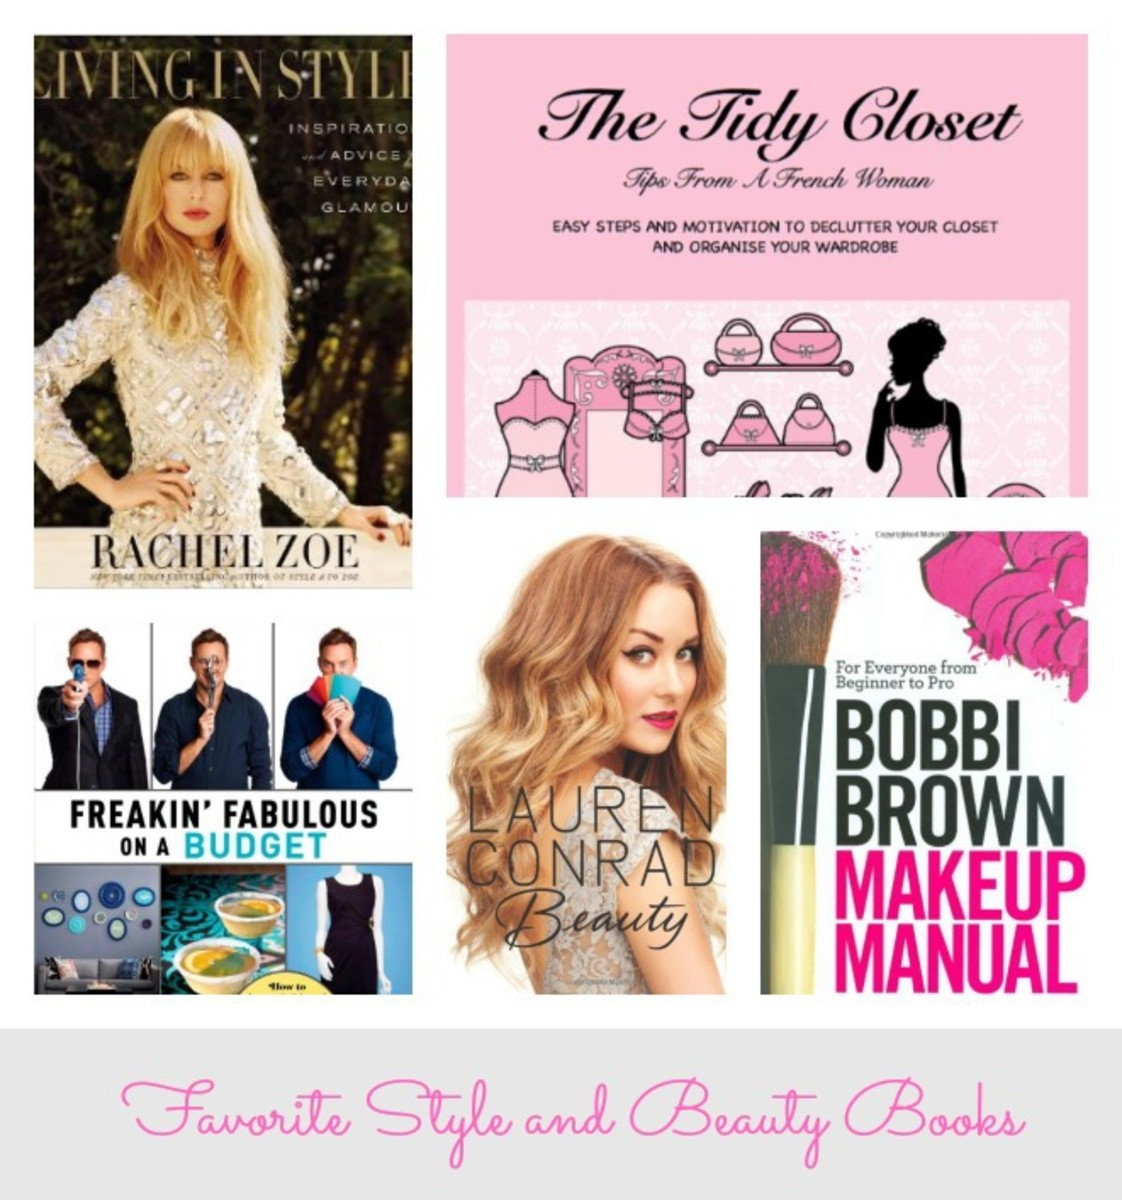 Style and Beauty Books.jpg